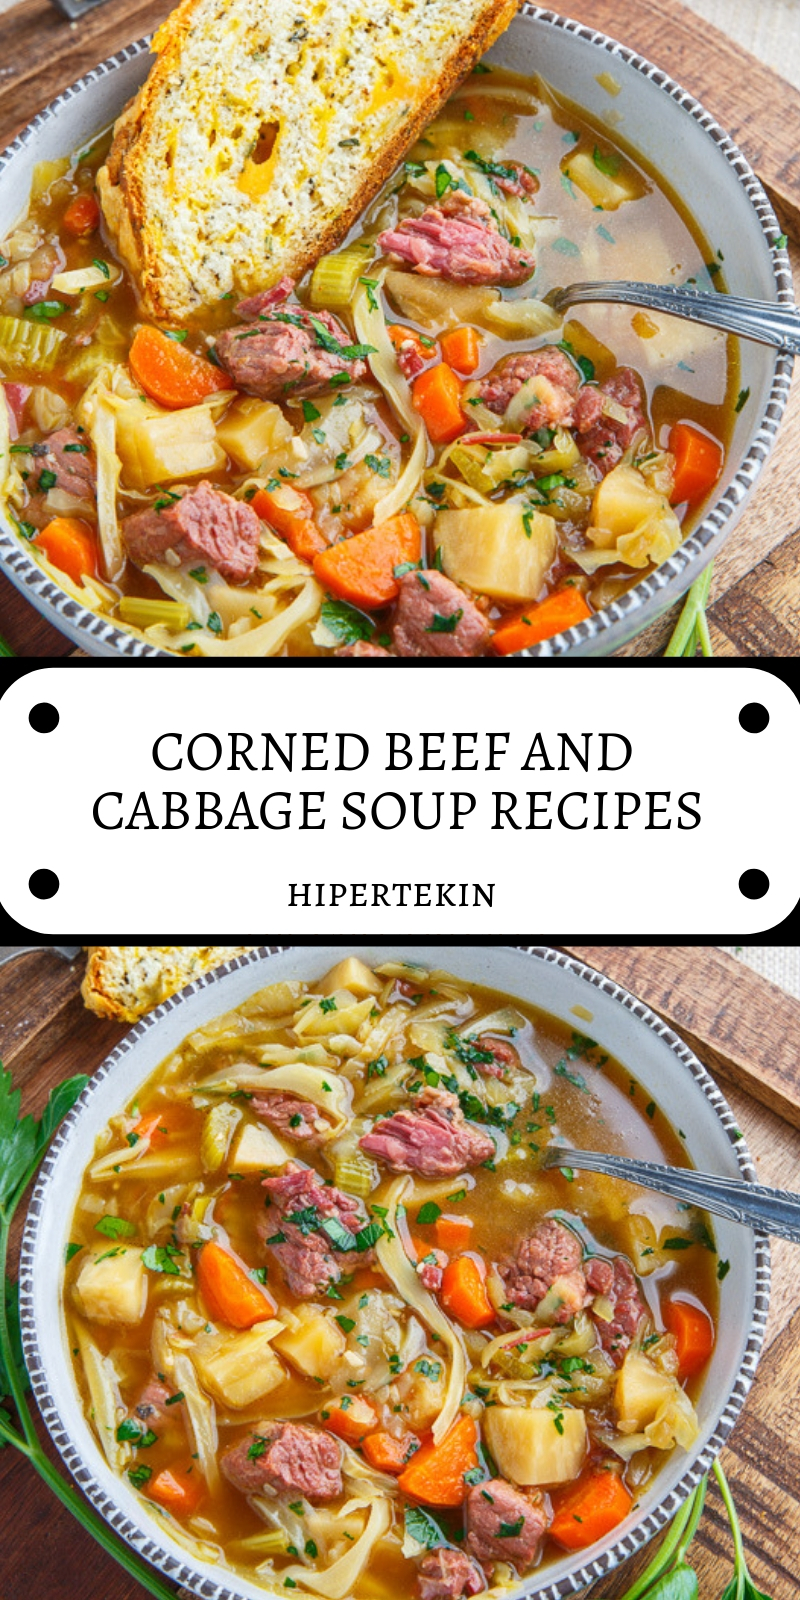 CORNED BEEF AND CABBAGE SOUP RECIPES